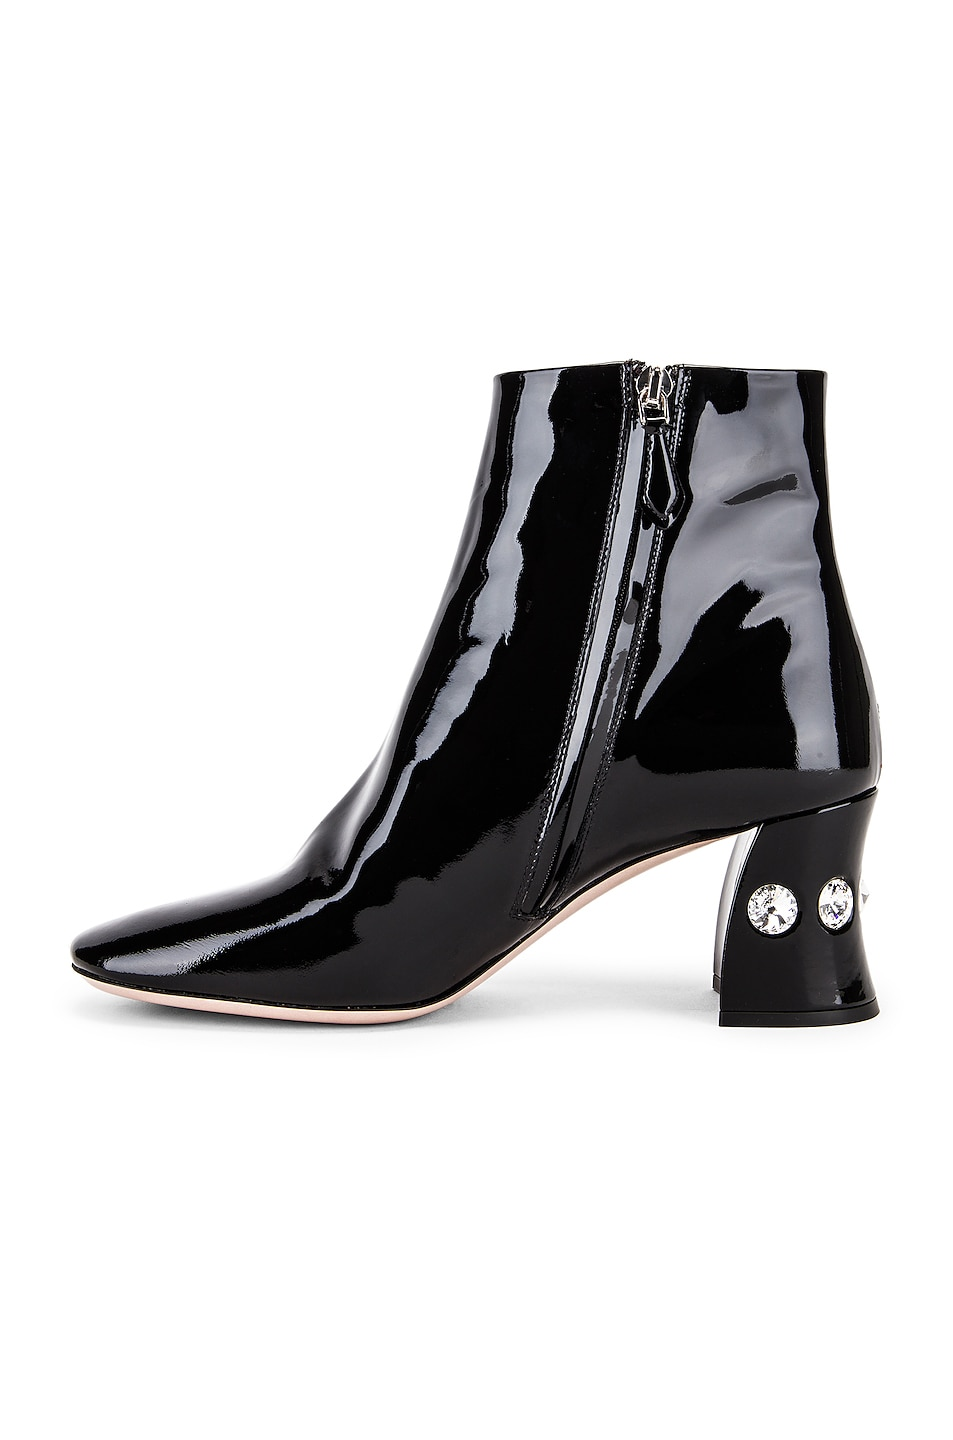 Image 5 of Miu Miu Jeweled Ankle Boots in Black